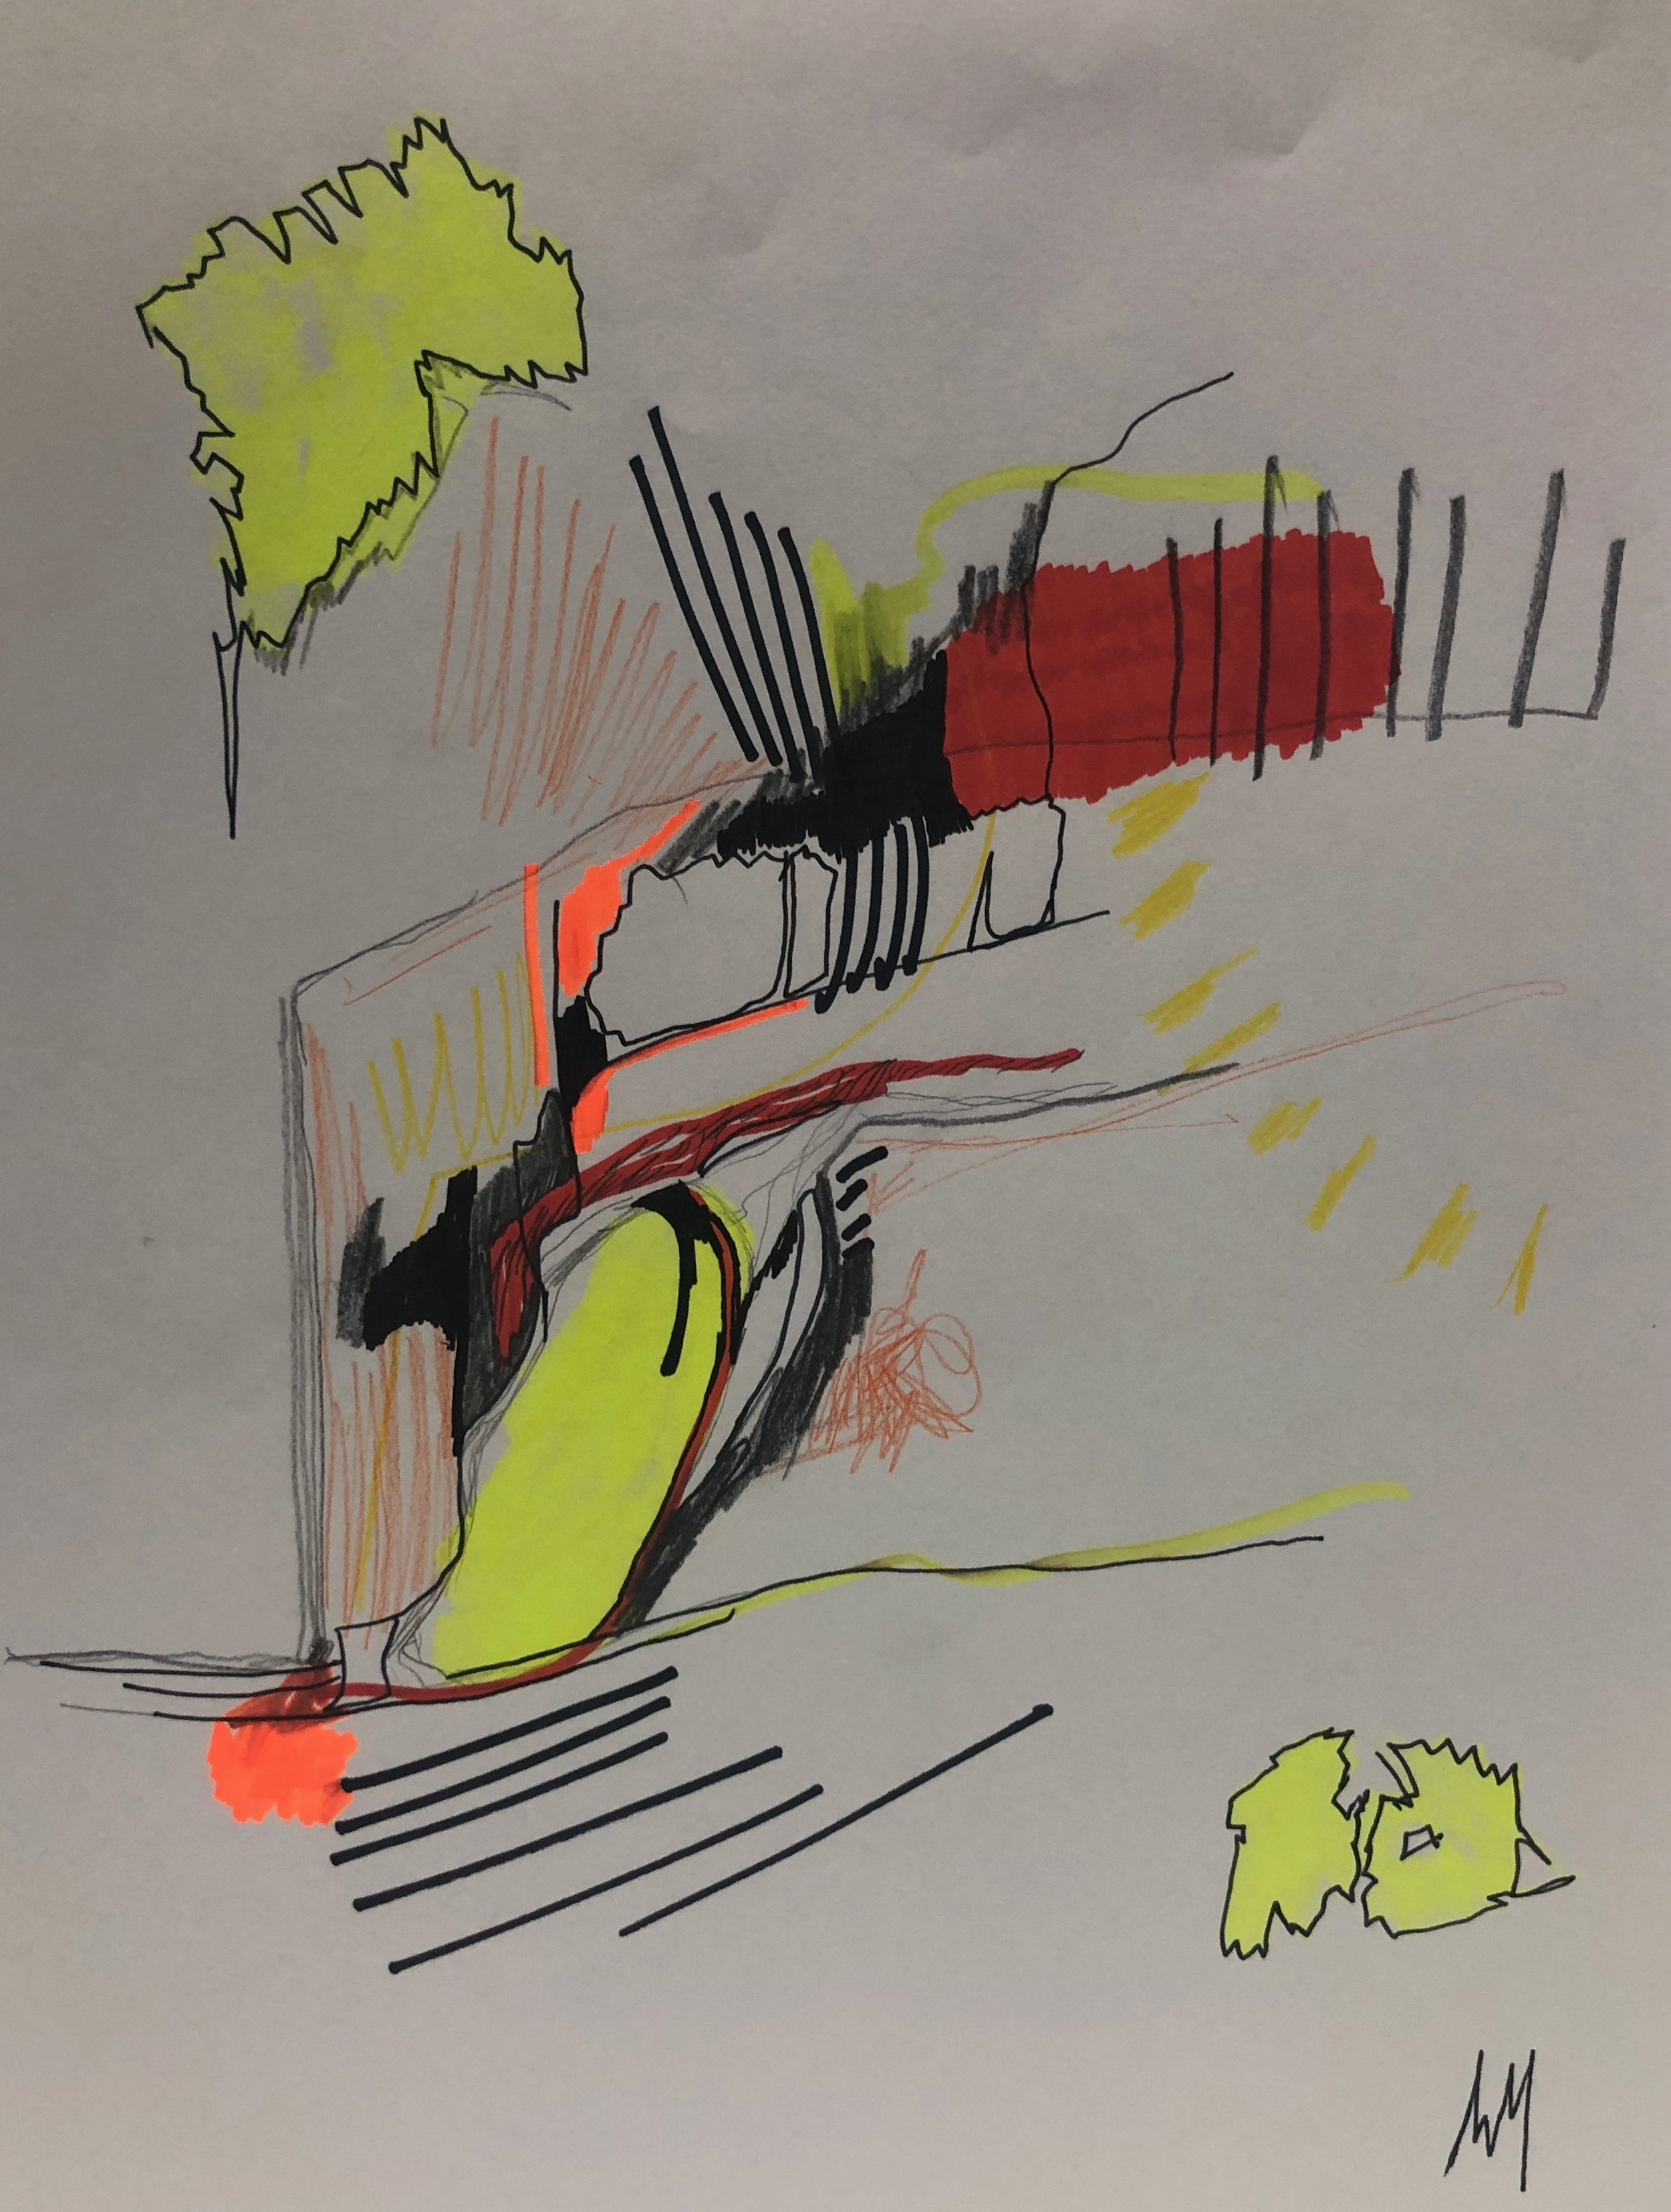 Deconstructed Sunrise - An original 12 x 9 inch on Paper, consisting of Pencil, Color Pencil, Marker, Highlighter and Pen.